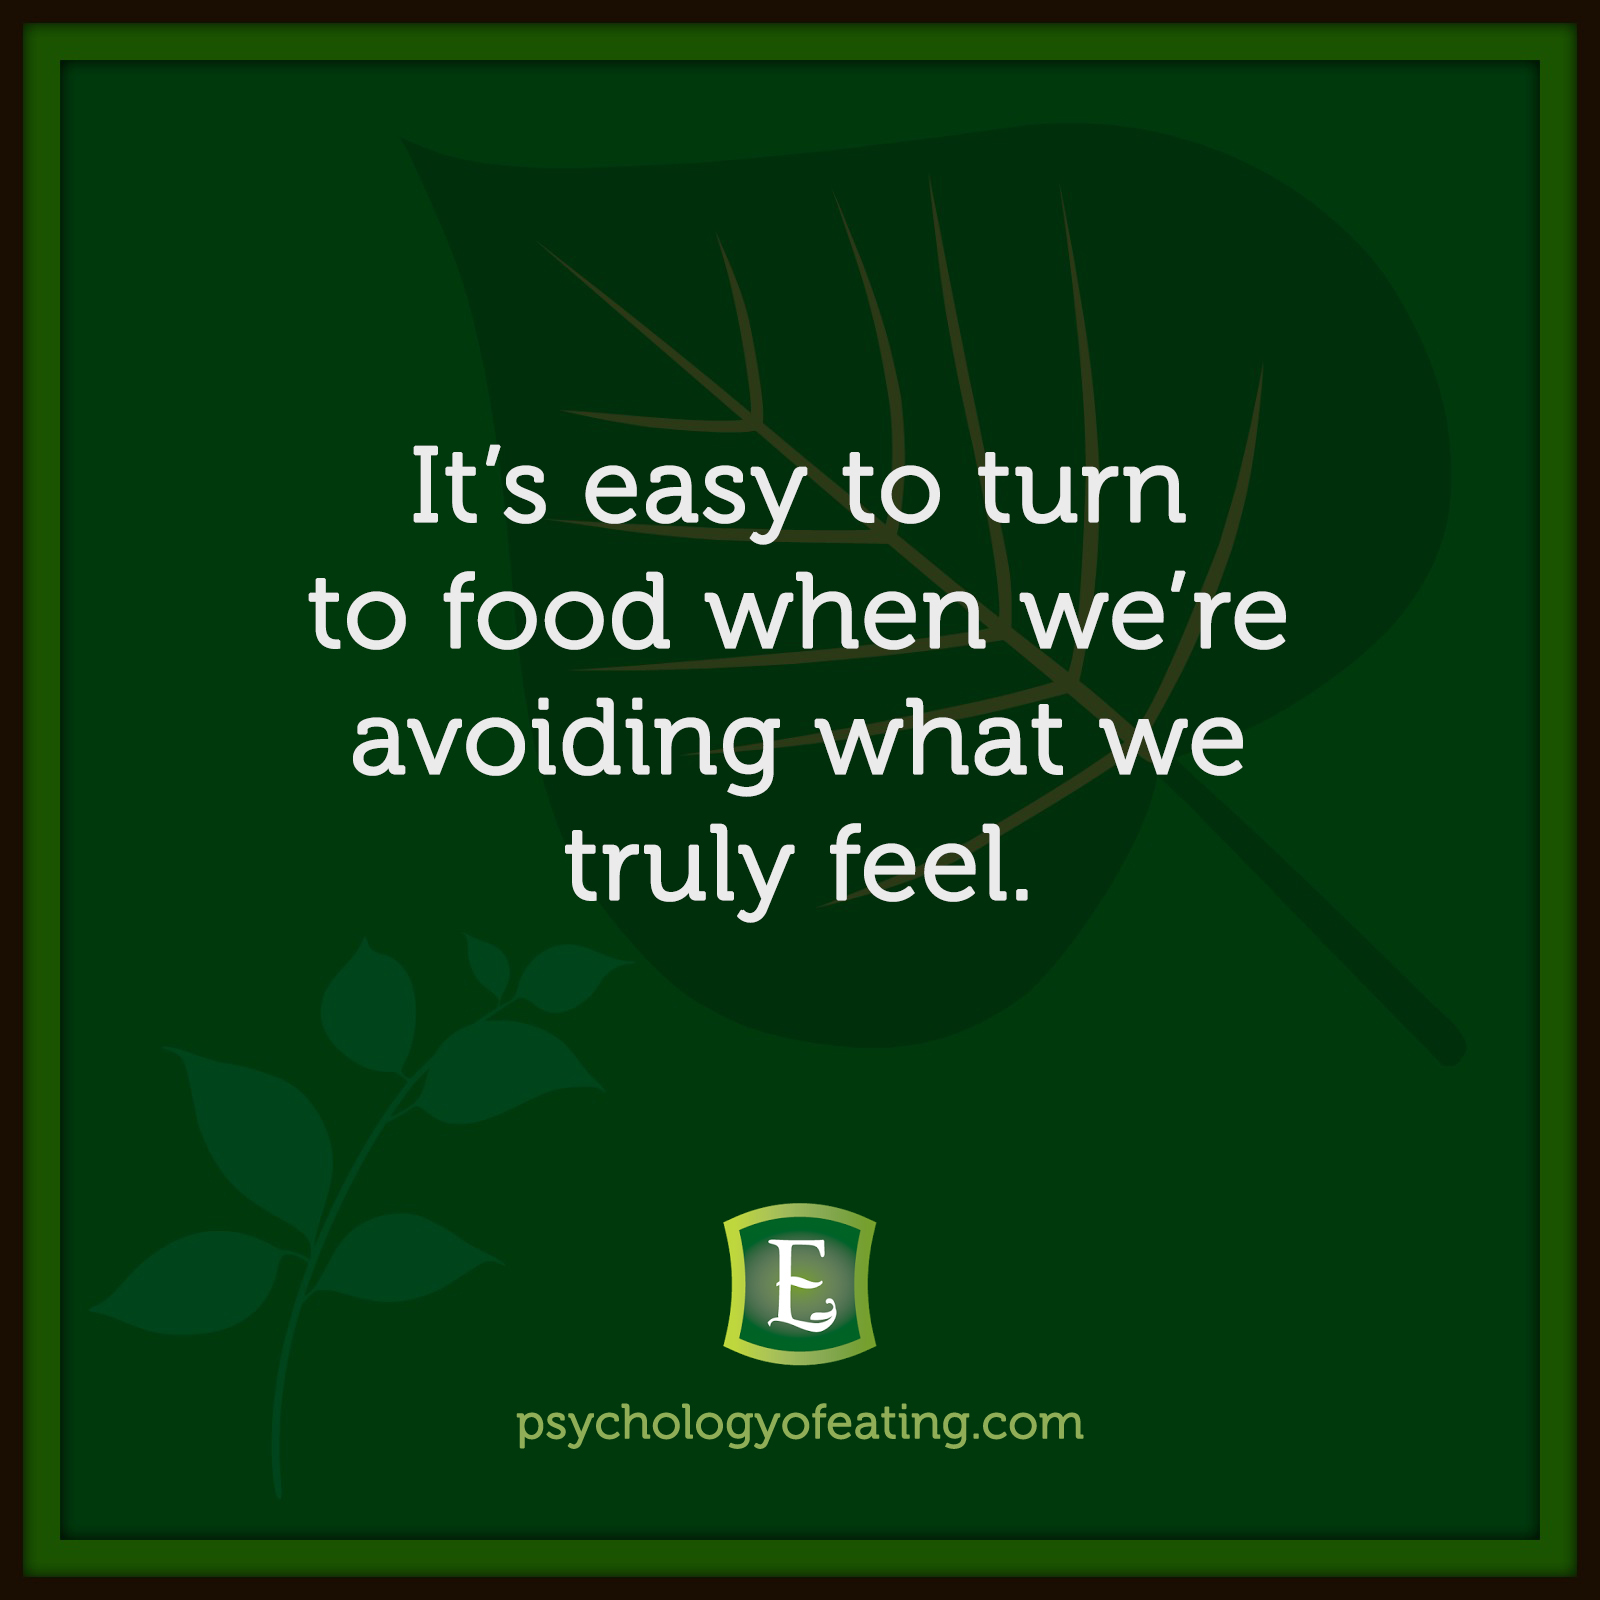 It's easy to turn to food when we're avoiding what we truly feel.  #health #nutrition #eatingpsychology #IPE